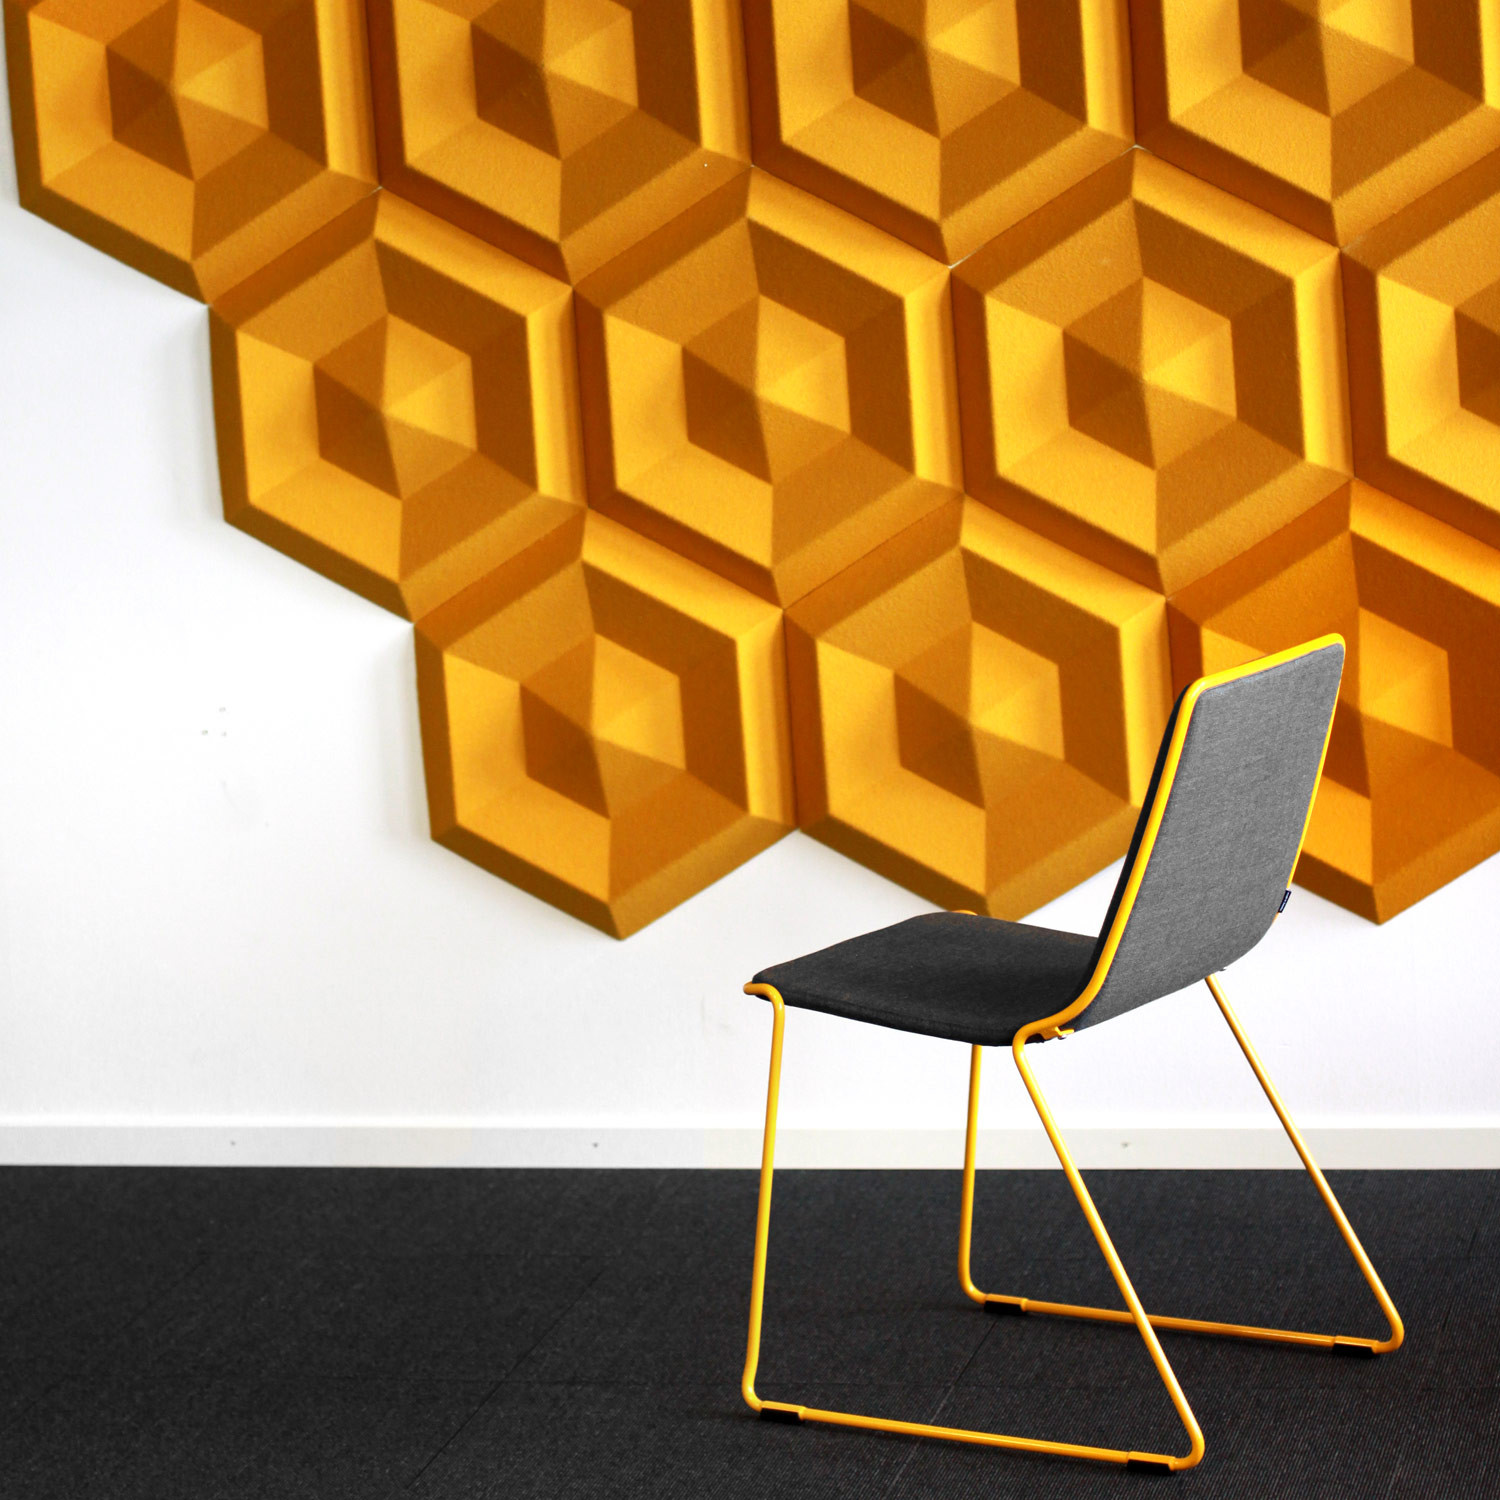 Beehive Acoustic Wall Panels